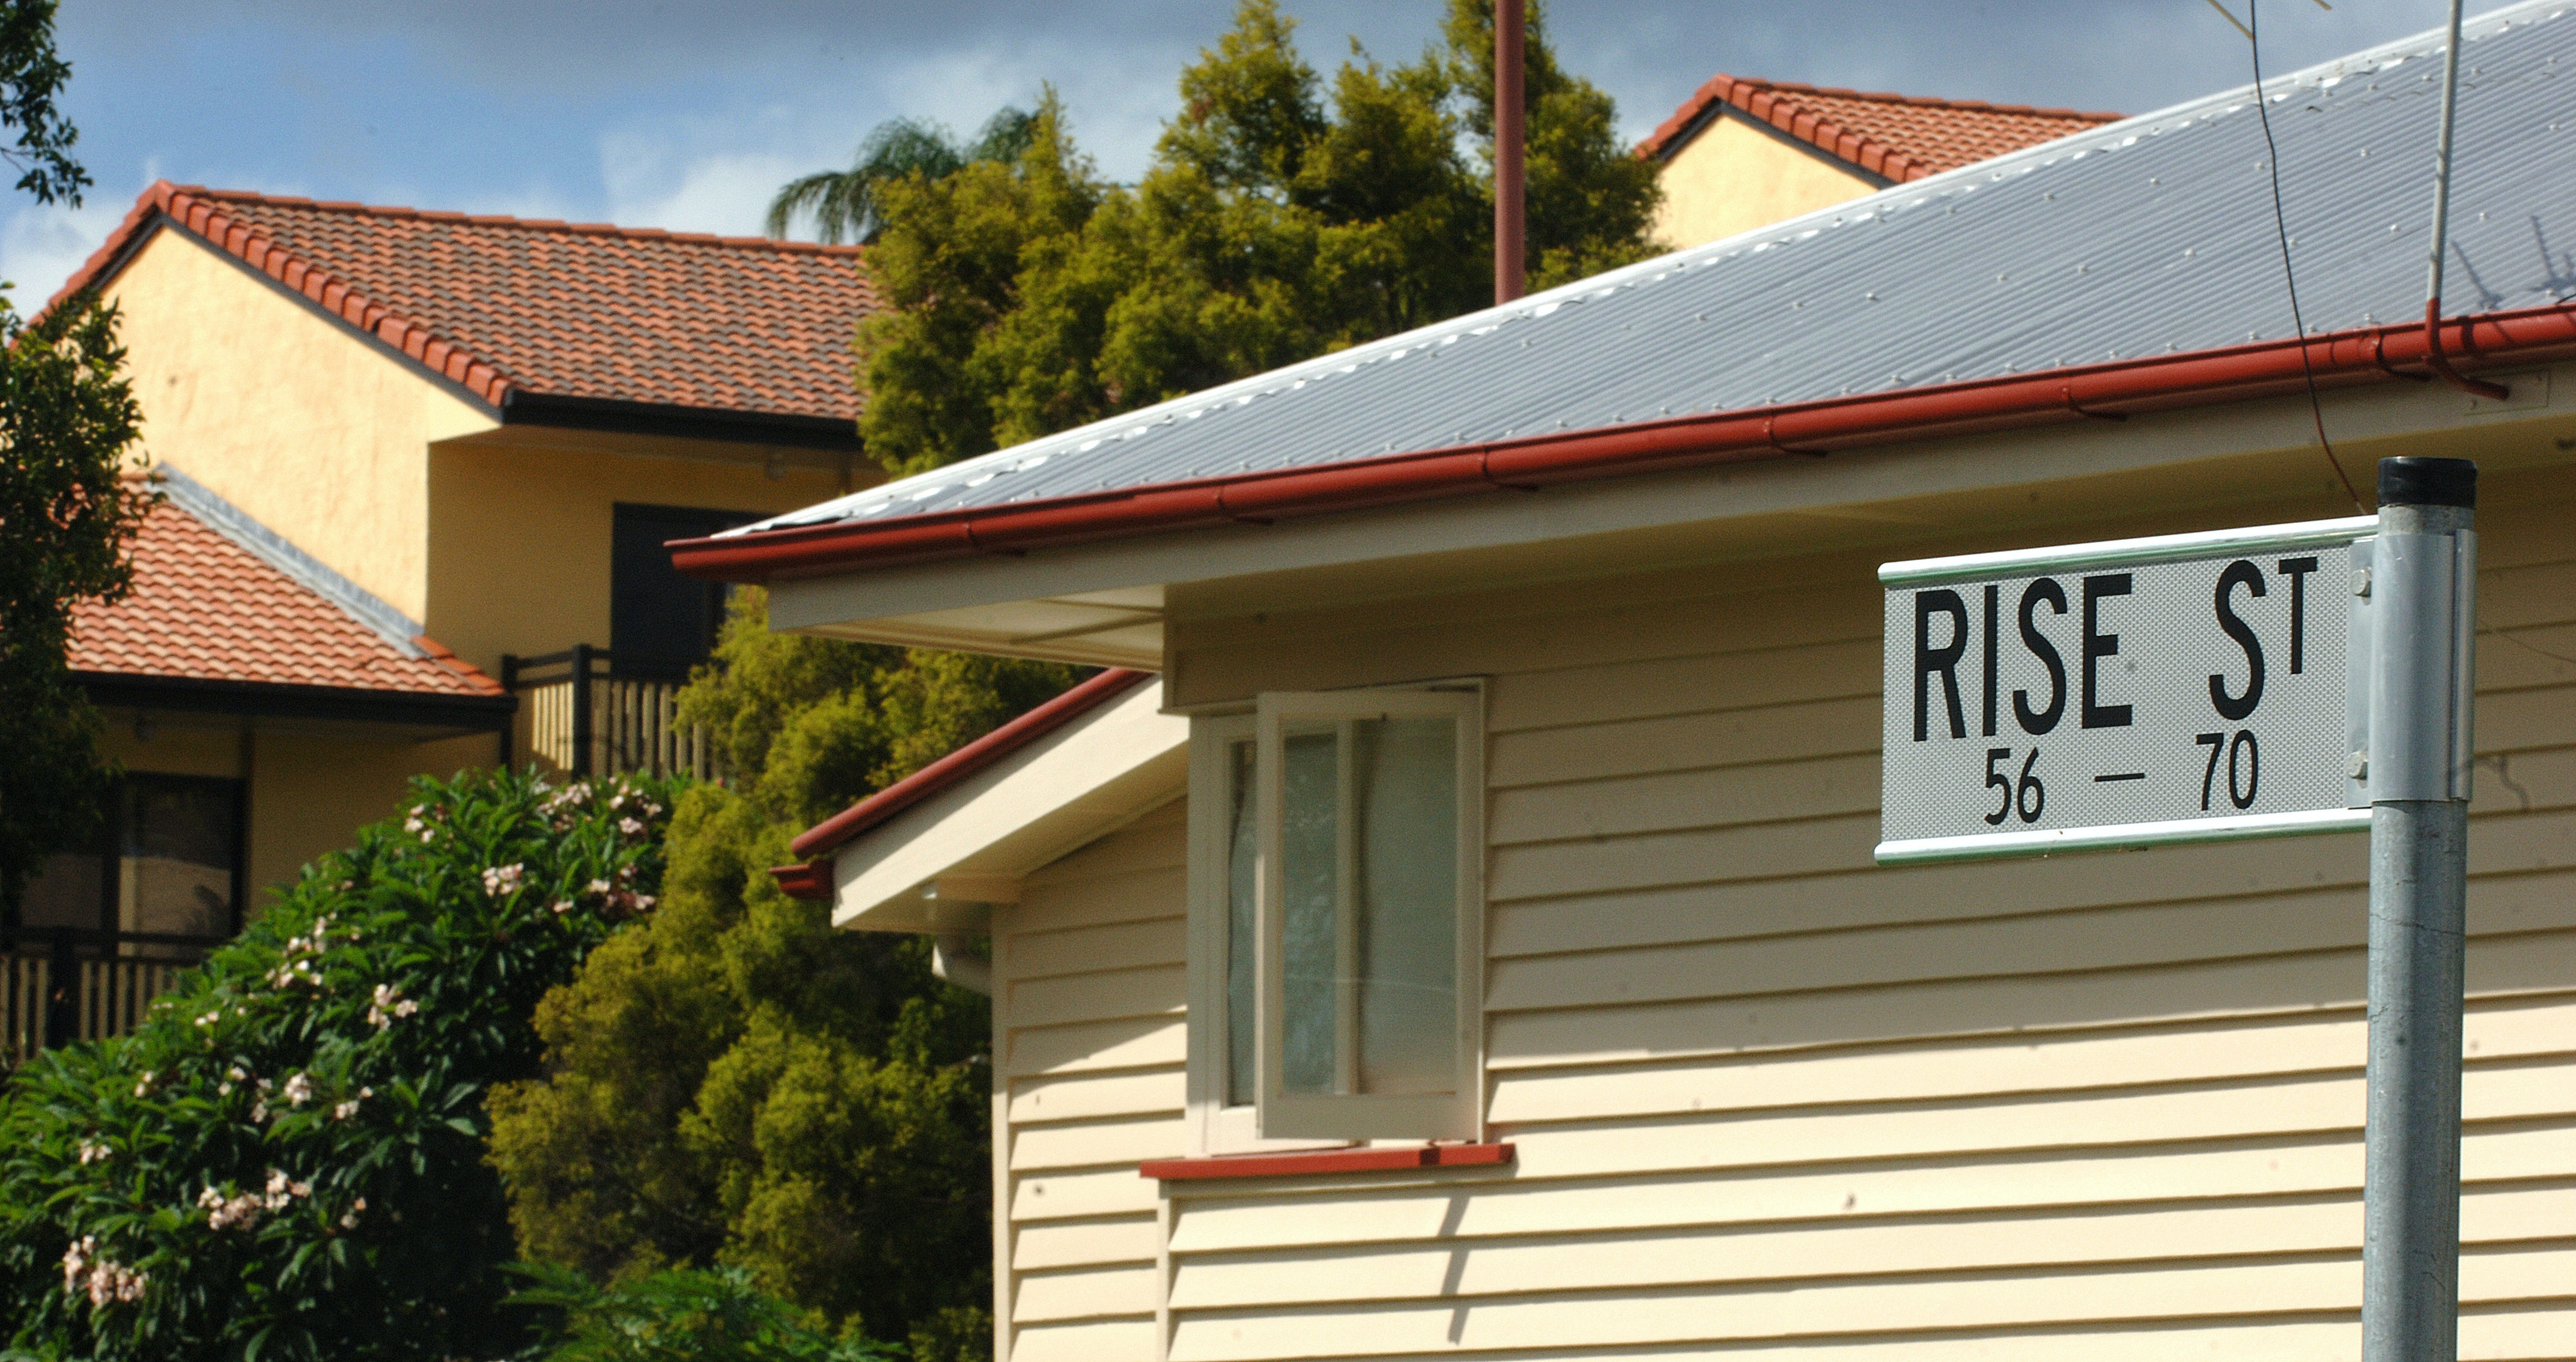 sydneysiders blame foreign investors for high housing prices – survey